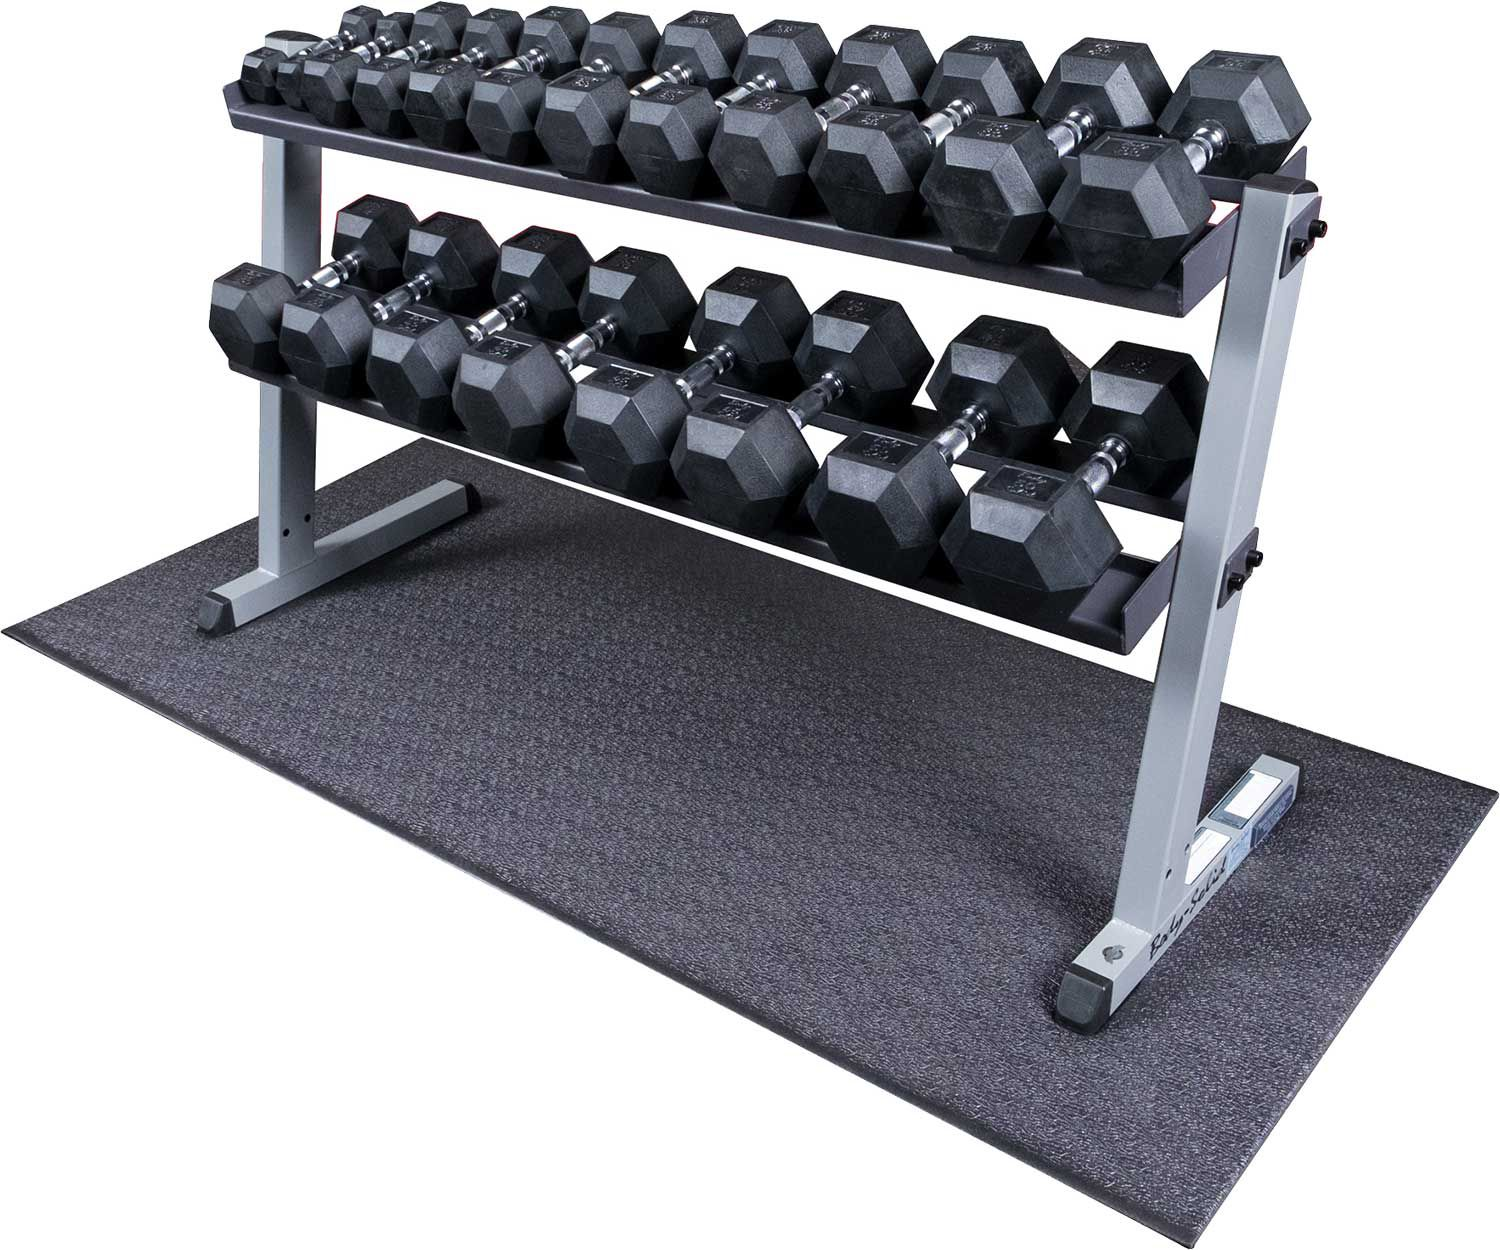 Rubber Dumbbell Set: Body Solid GDR60 Rubber Hex Dumbbell Rack And Set